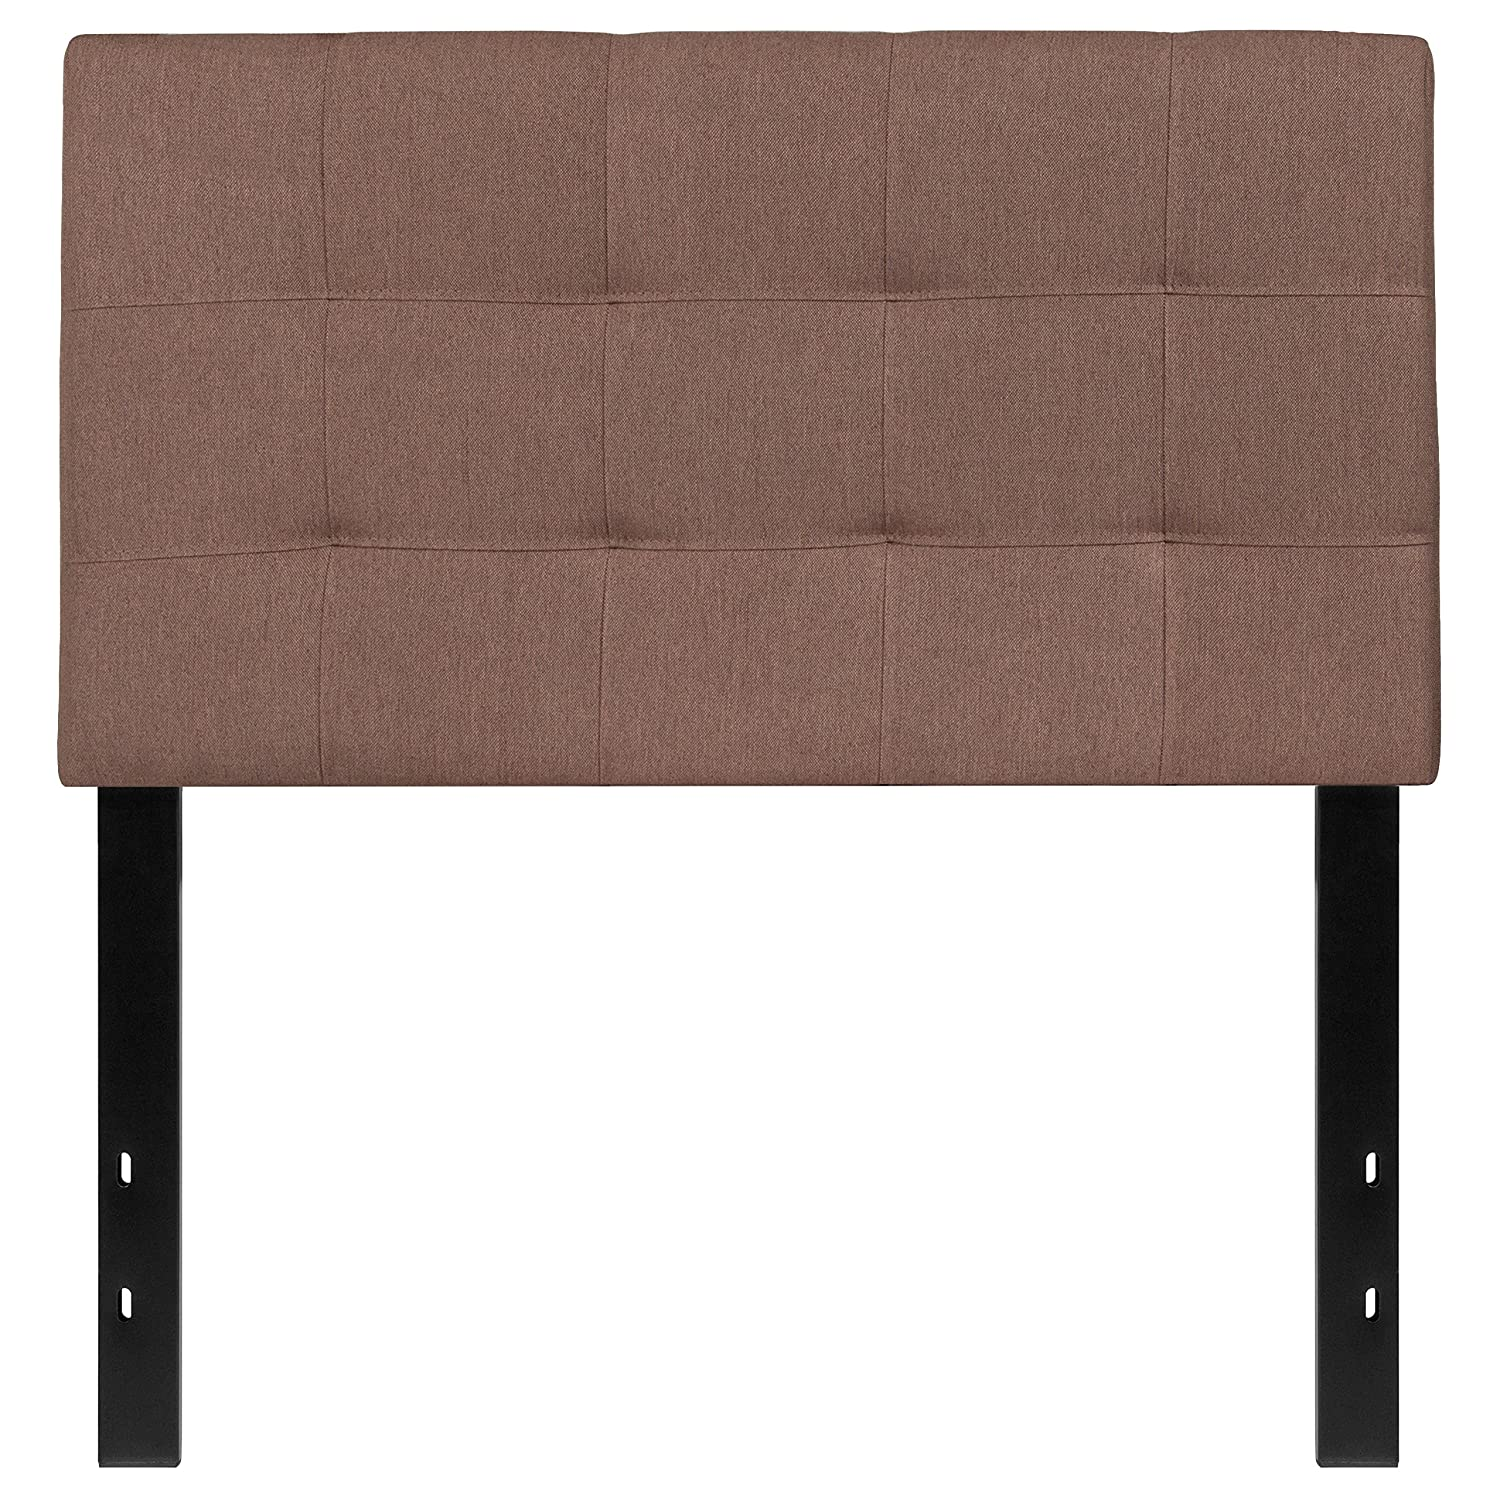 Flash Furniture Bedford Tufted Upholstered Twin Size Headboard in Beige Fabric HG-HB1704-T-B-GG